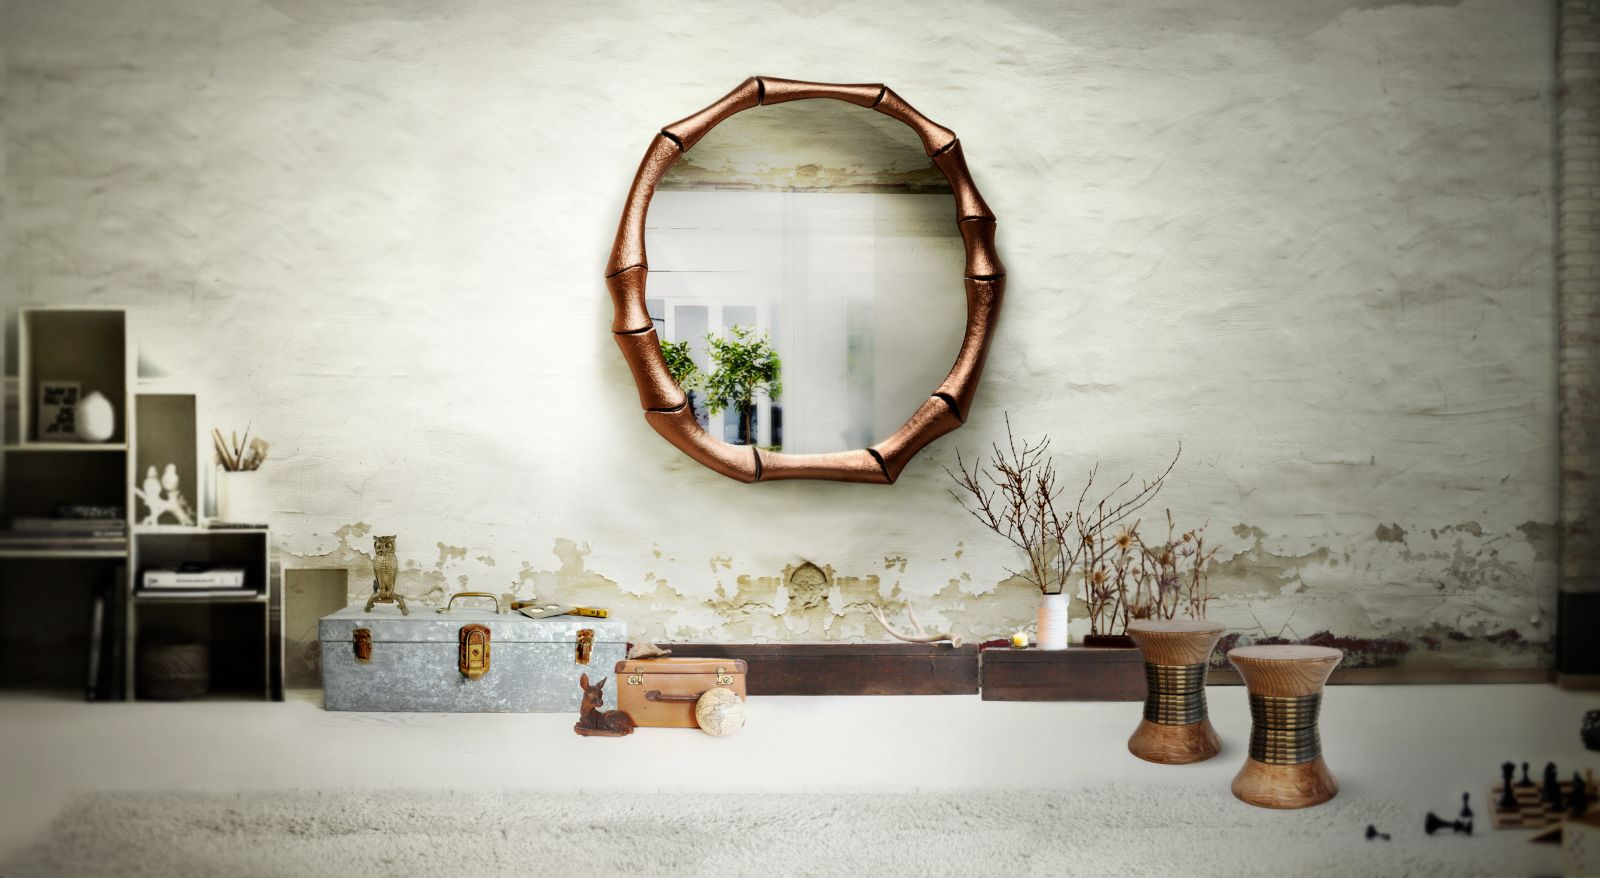 8 Dining Room Wall Mirrors that you will Love Dining Room Wall Mirrors 8 Dining Room Wall Mirrors that you will Love 8 Dining Room Wall Mirrors that you will Love6